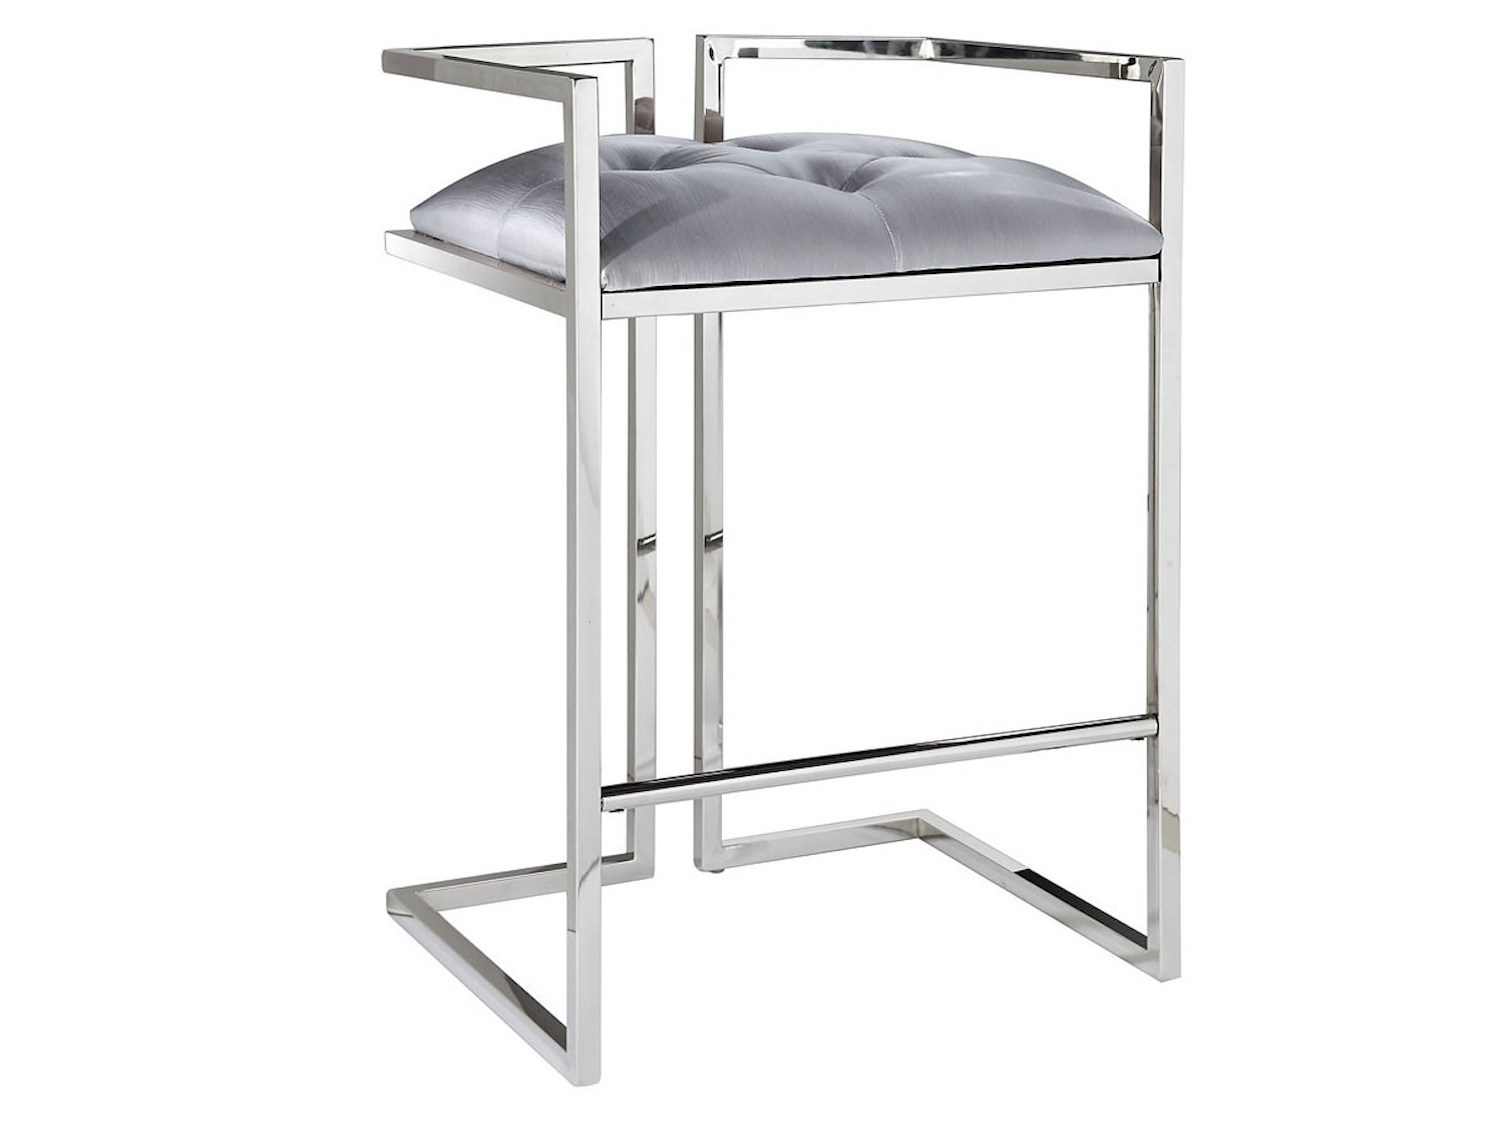 Coralie Silver Satin Stool, GY-COU-8051, Bar Stools, Coralie Silver Satin Stool from Xcella by Midha Furniture serving Brampton, Mississauga, Etobicoke, Toronto, Scraborough, Caledon, Cambridge, Oakville, Markham, Ajax, Pickering, Oshawa, Richmondhill, Kitchener, Hamilton, Cambridge, Waterloo and GTA area